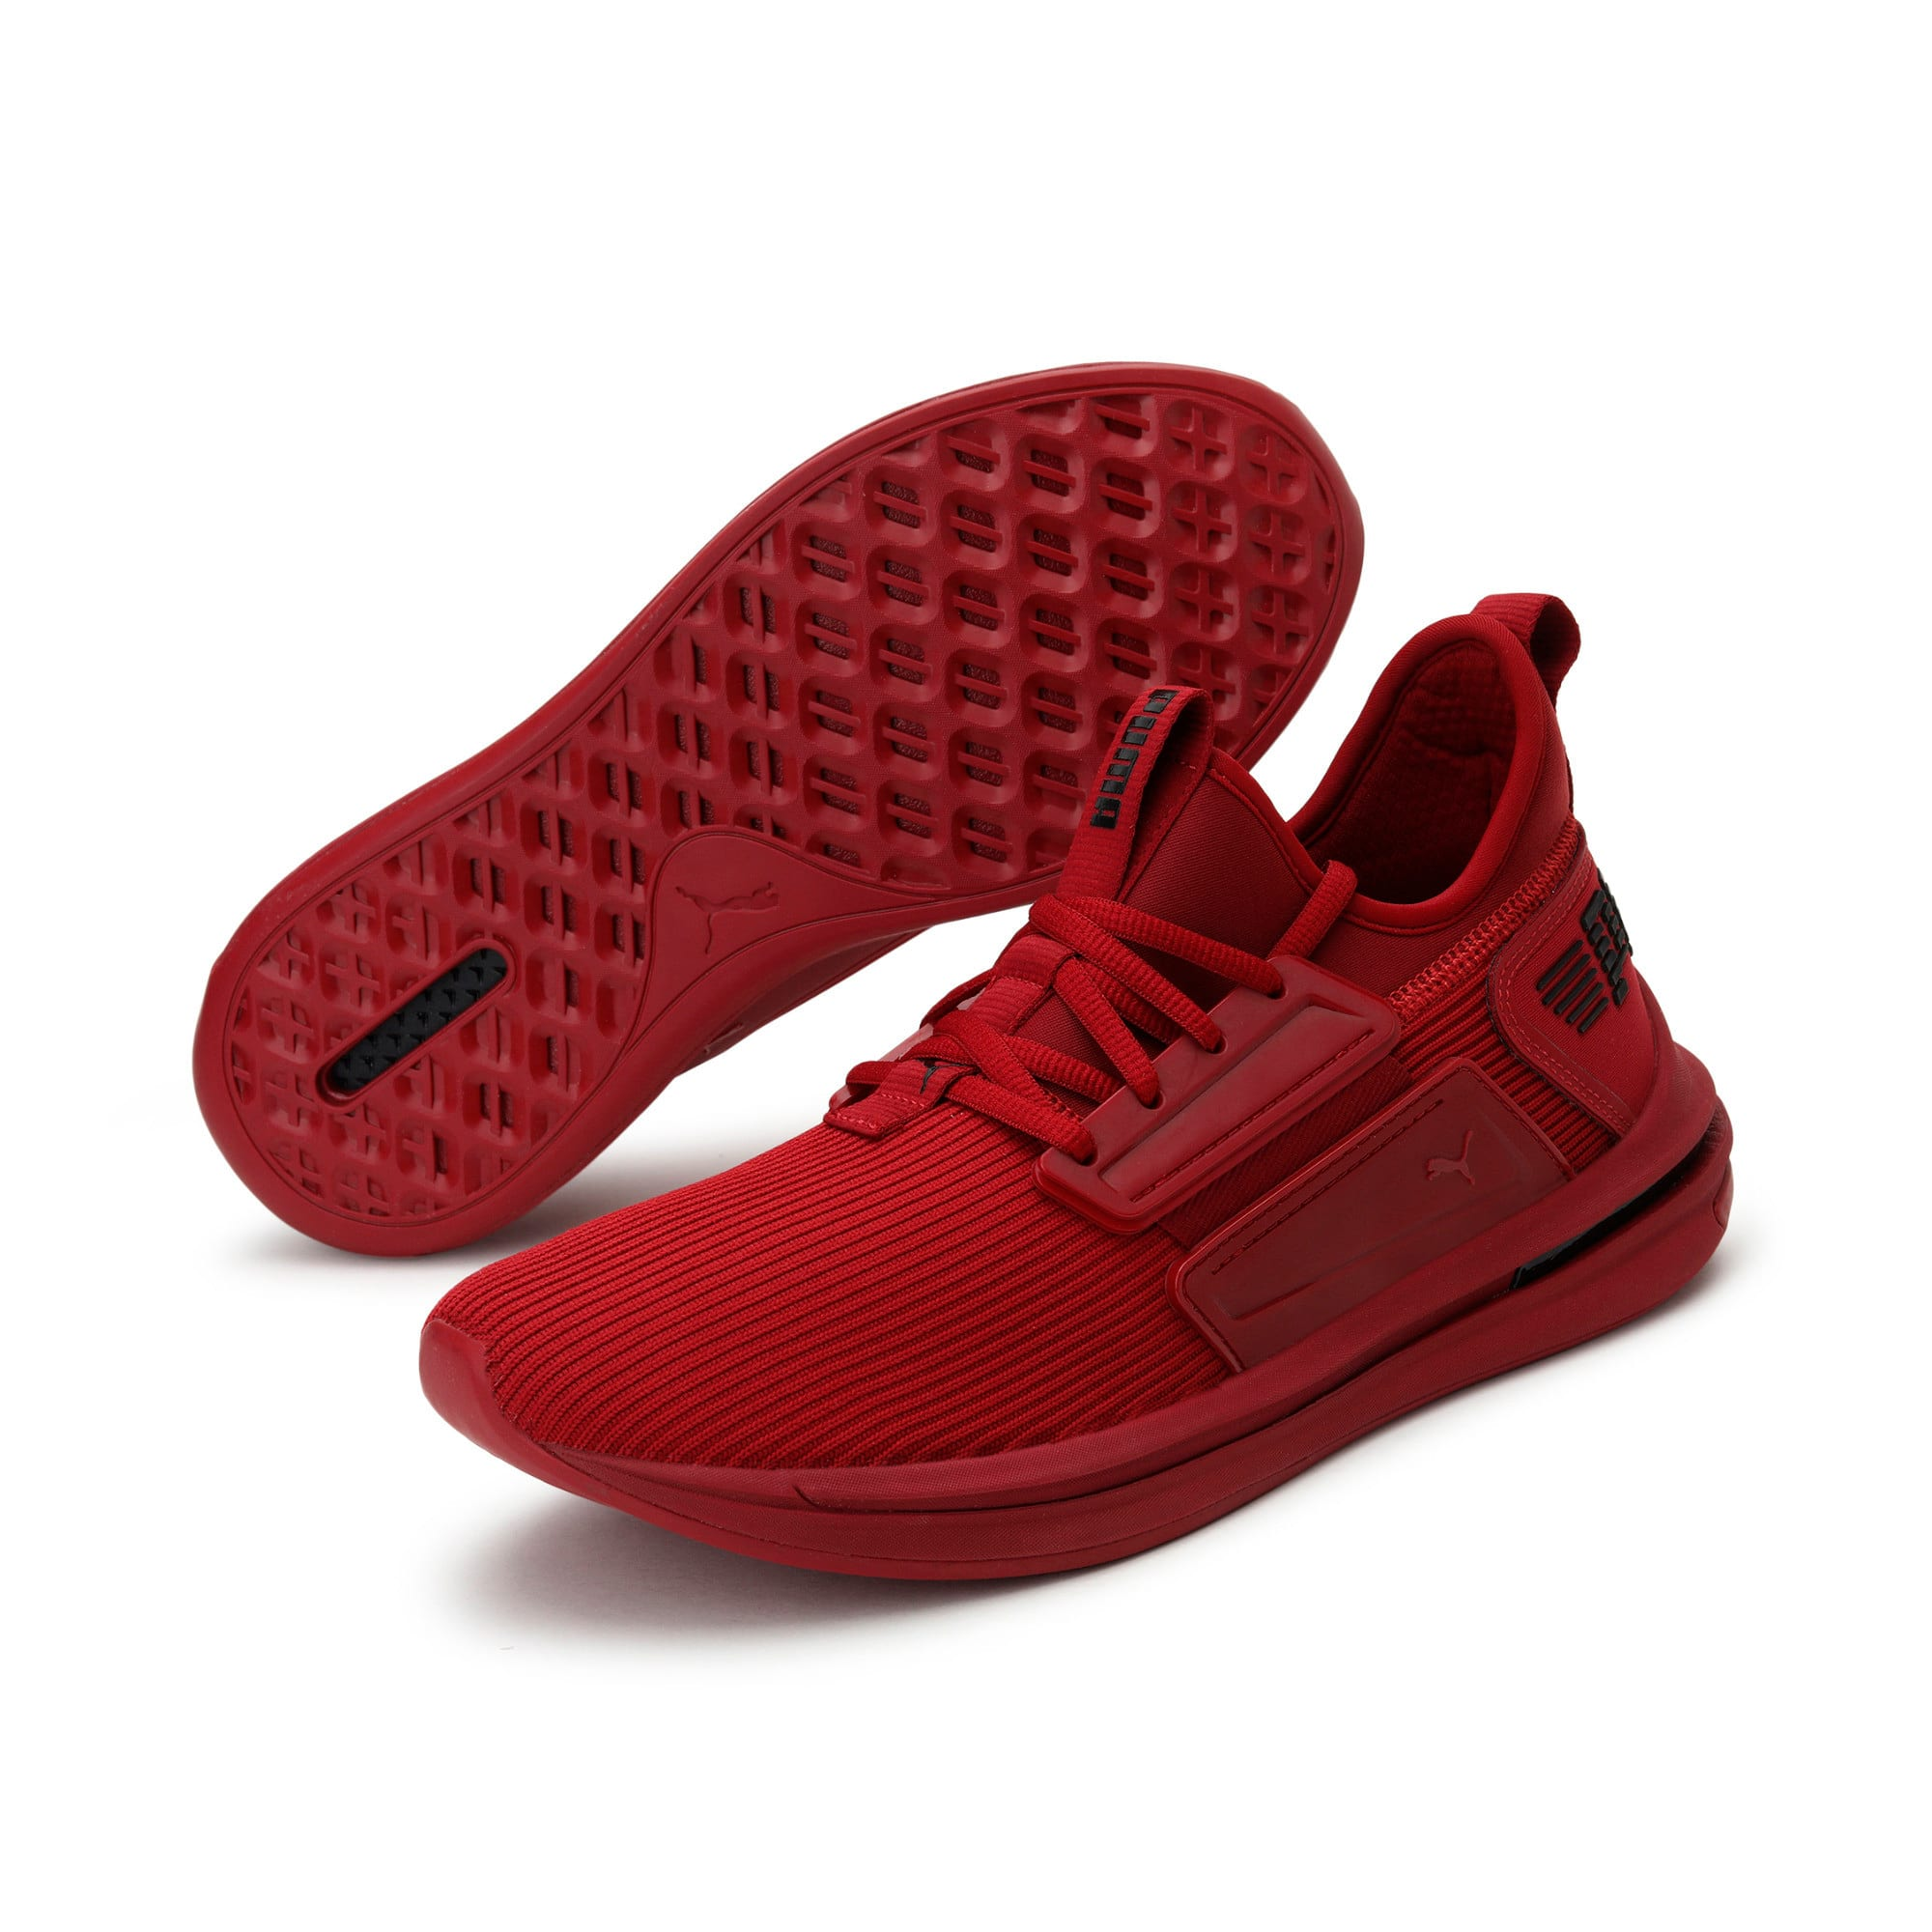 Thumbnail 2 of IGNITE Limitless SR Men's Running Shoes, Red Dahlia, medium-IND